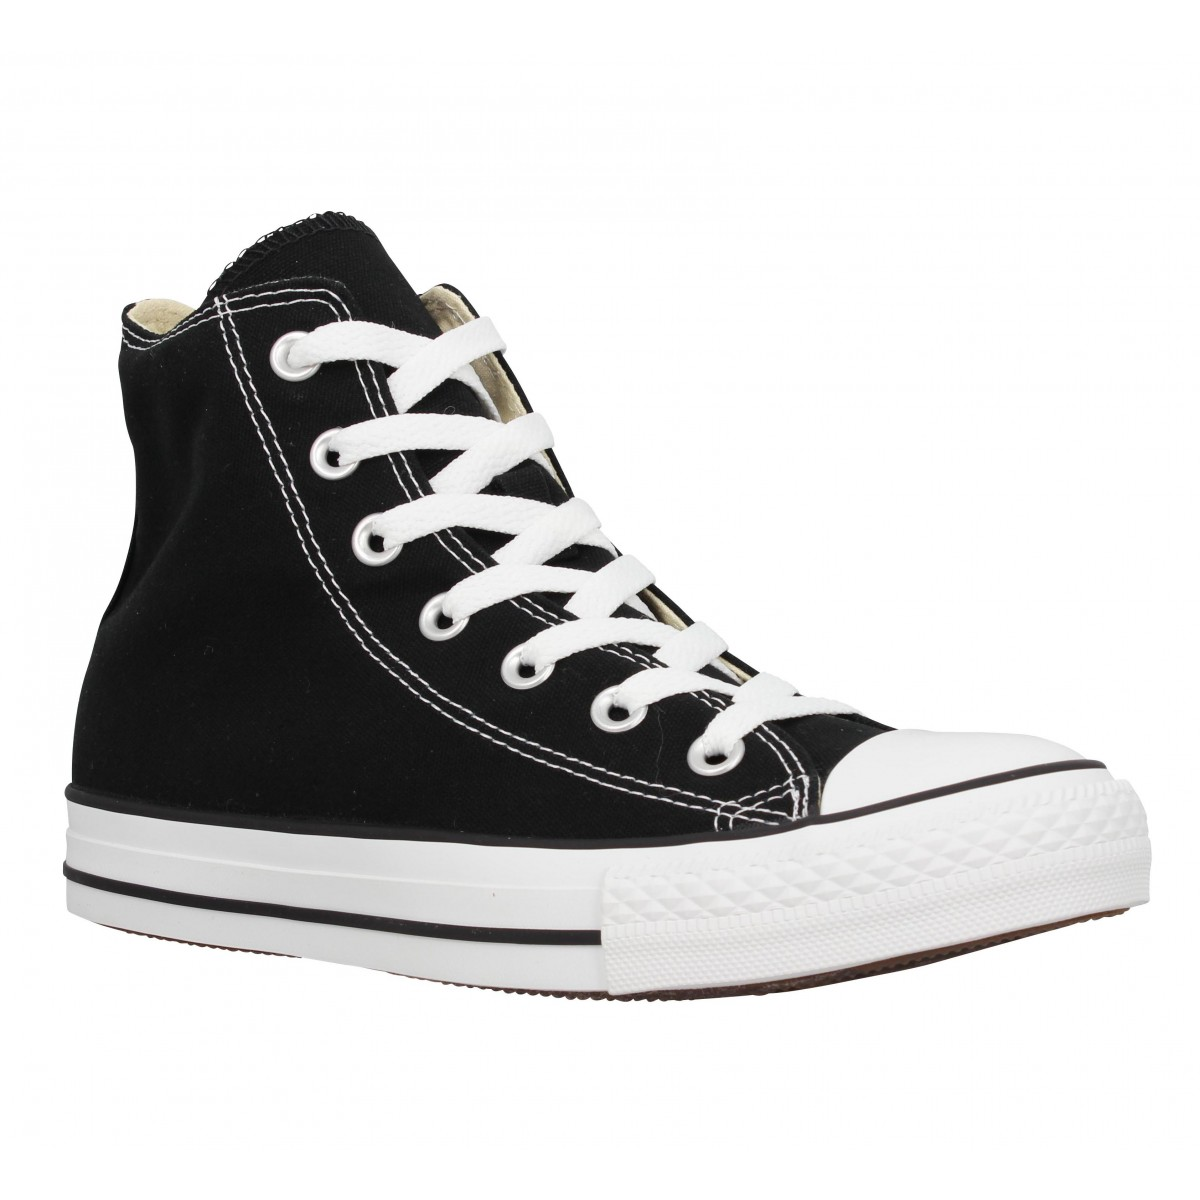 Baskets CONVERSE Chuck Taylor All Star Hi Toile Homme Noir